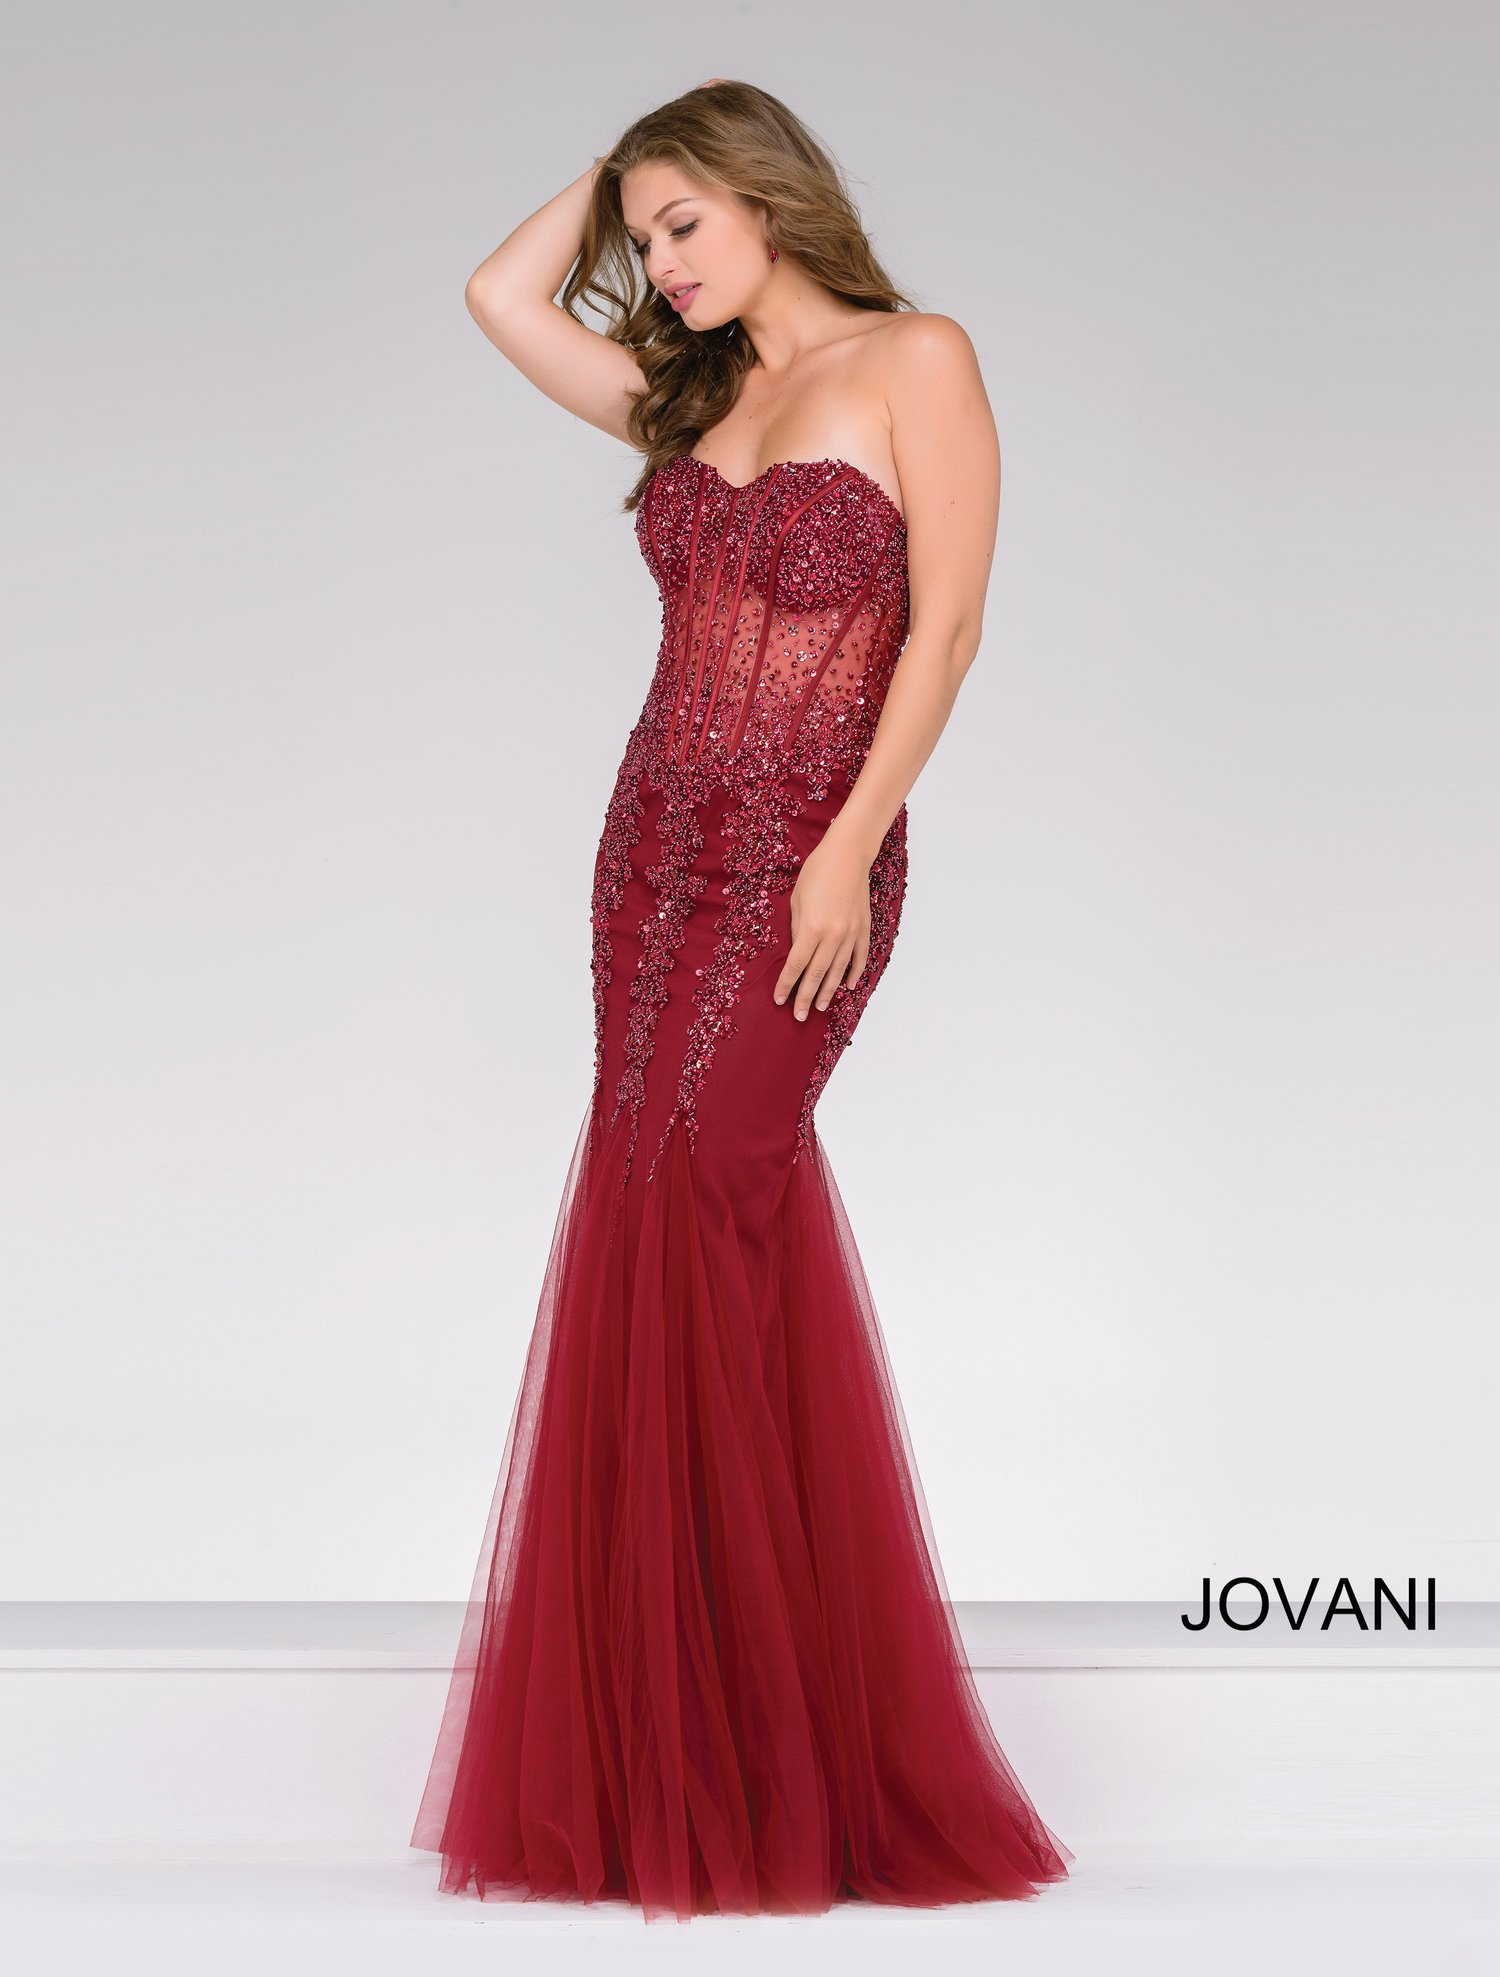 6c67f12b488 Jovani Pink And Black Prom Dress - Data Dynamic AG